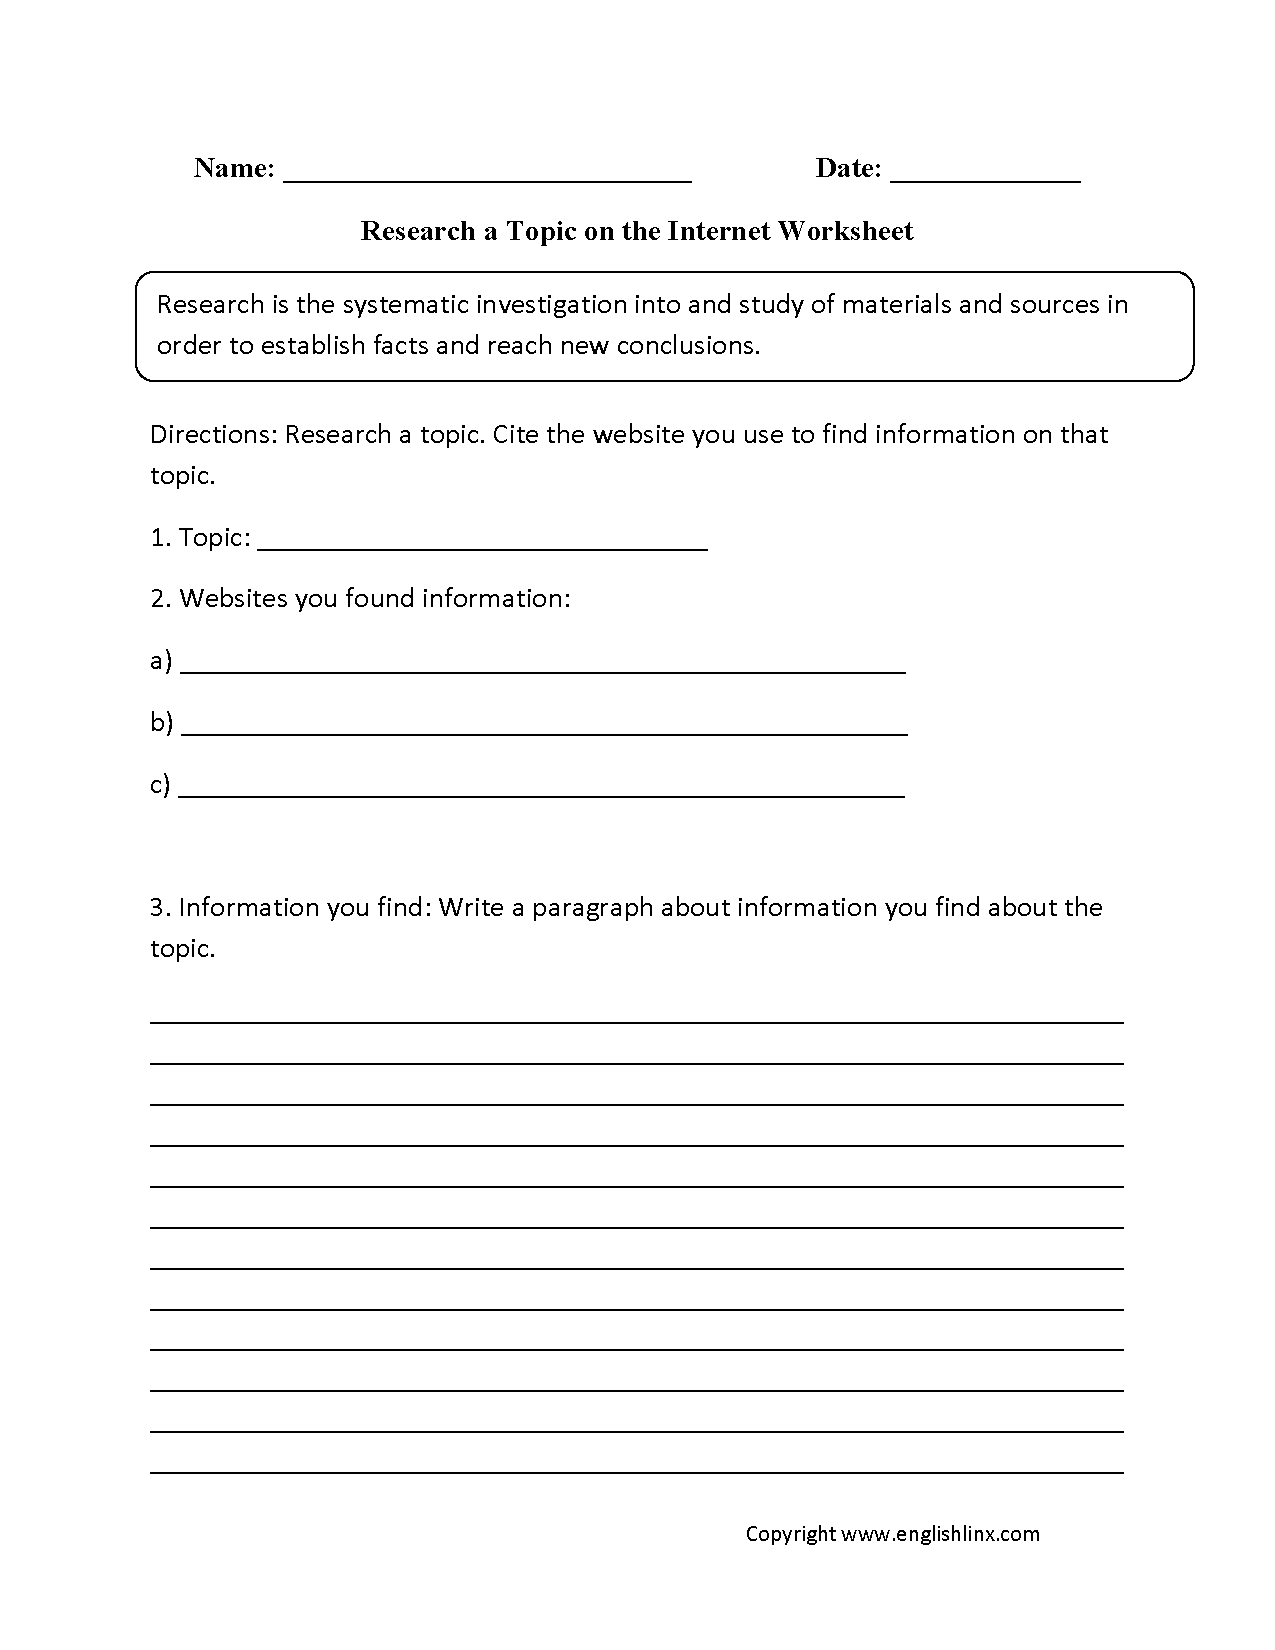 Research Worksheets | Research a Topic on the Internet Worksheet